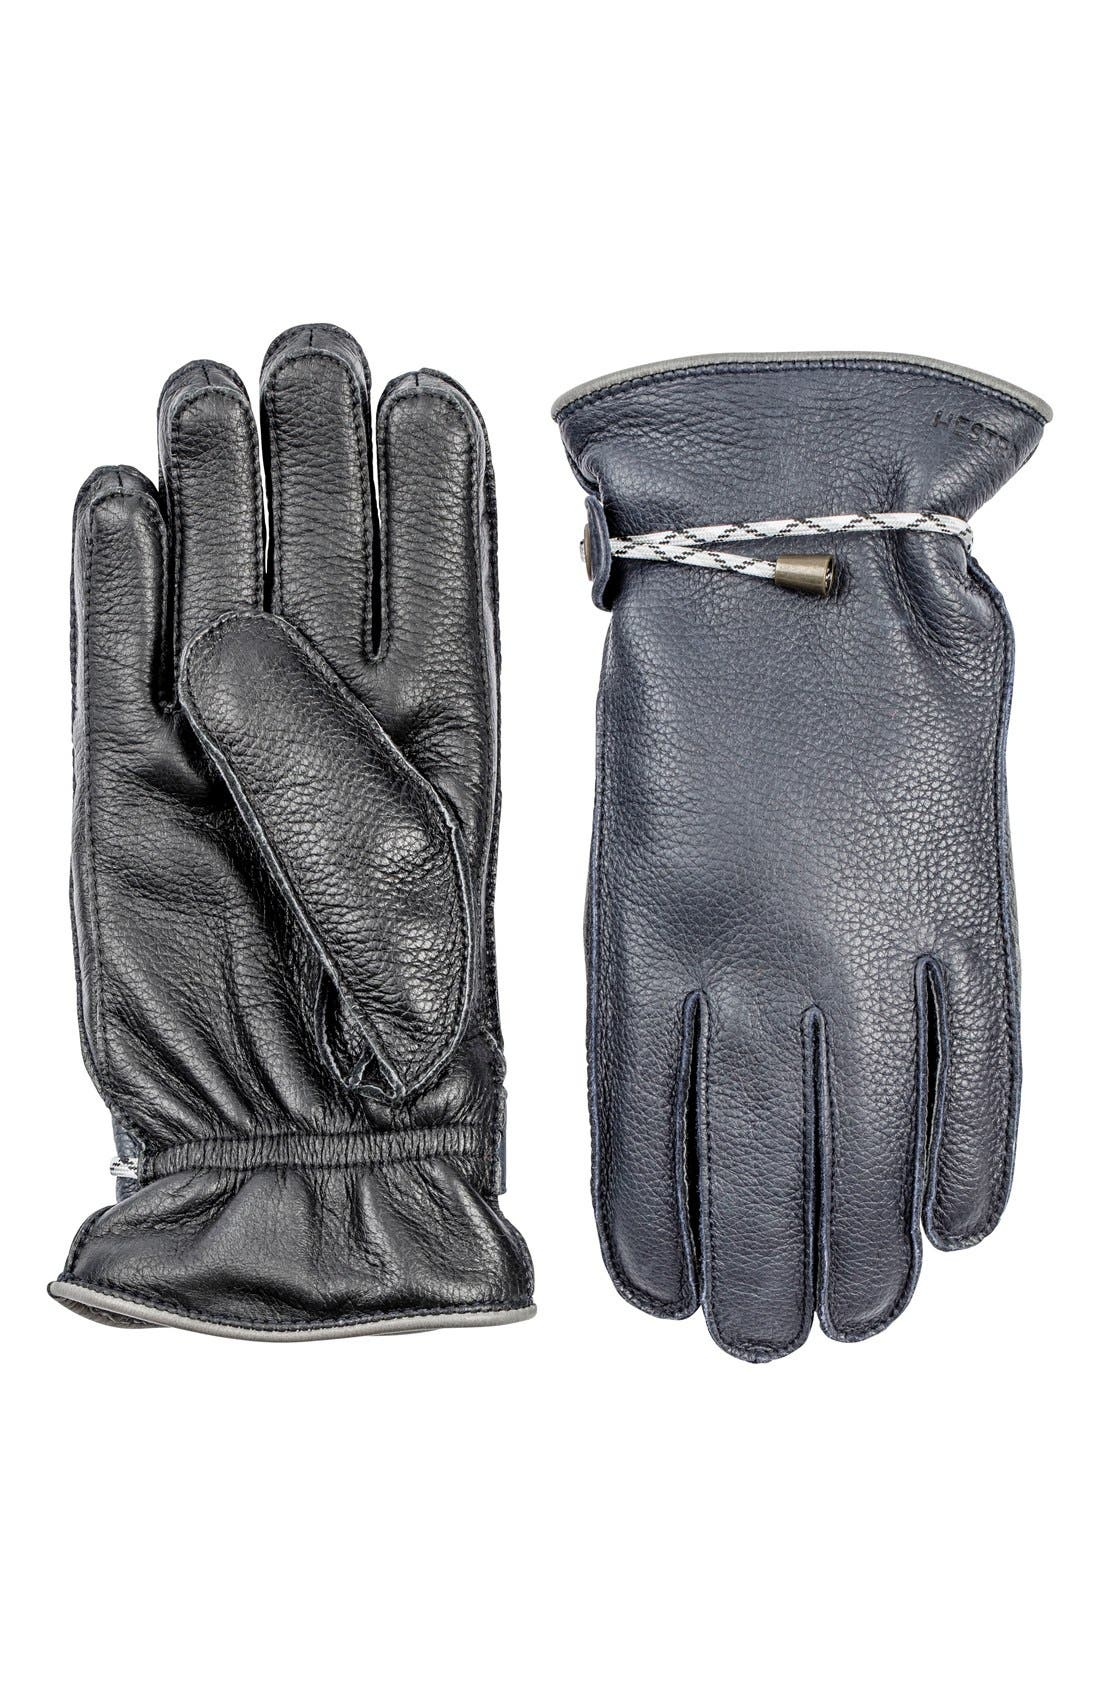 Alternate Image 1 Selected - Hestra 'Granvik' Leather Gloves